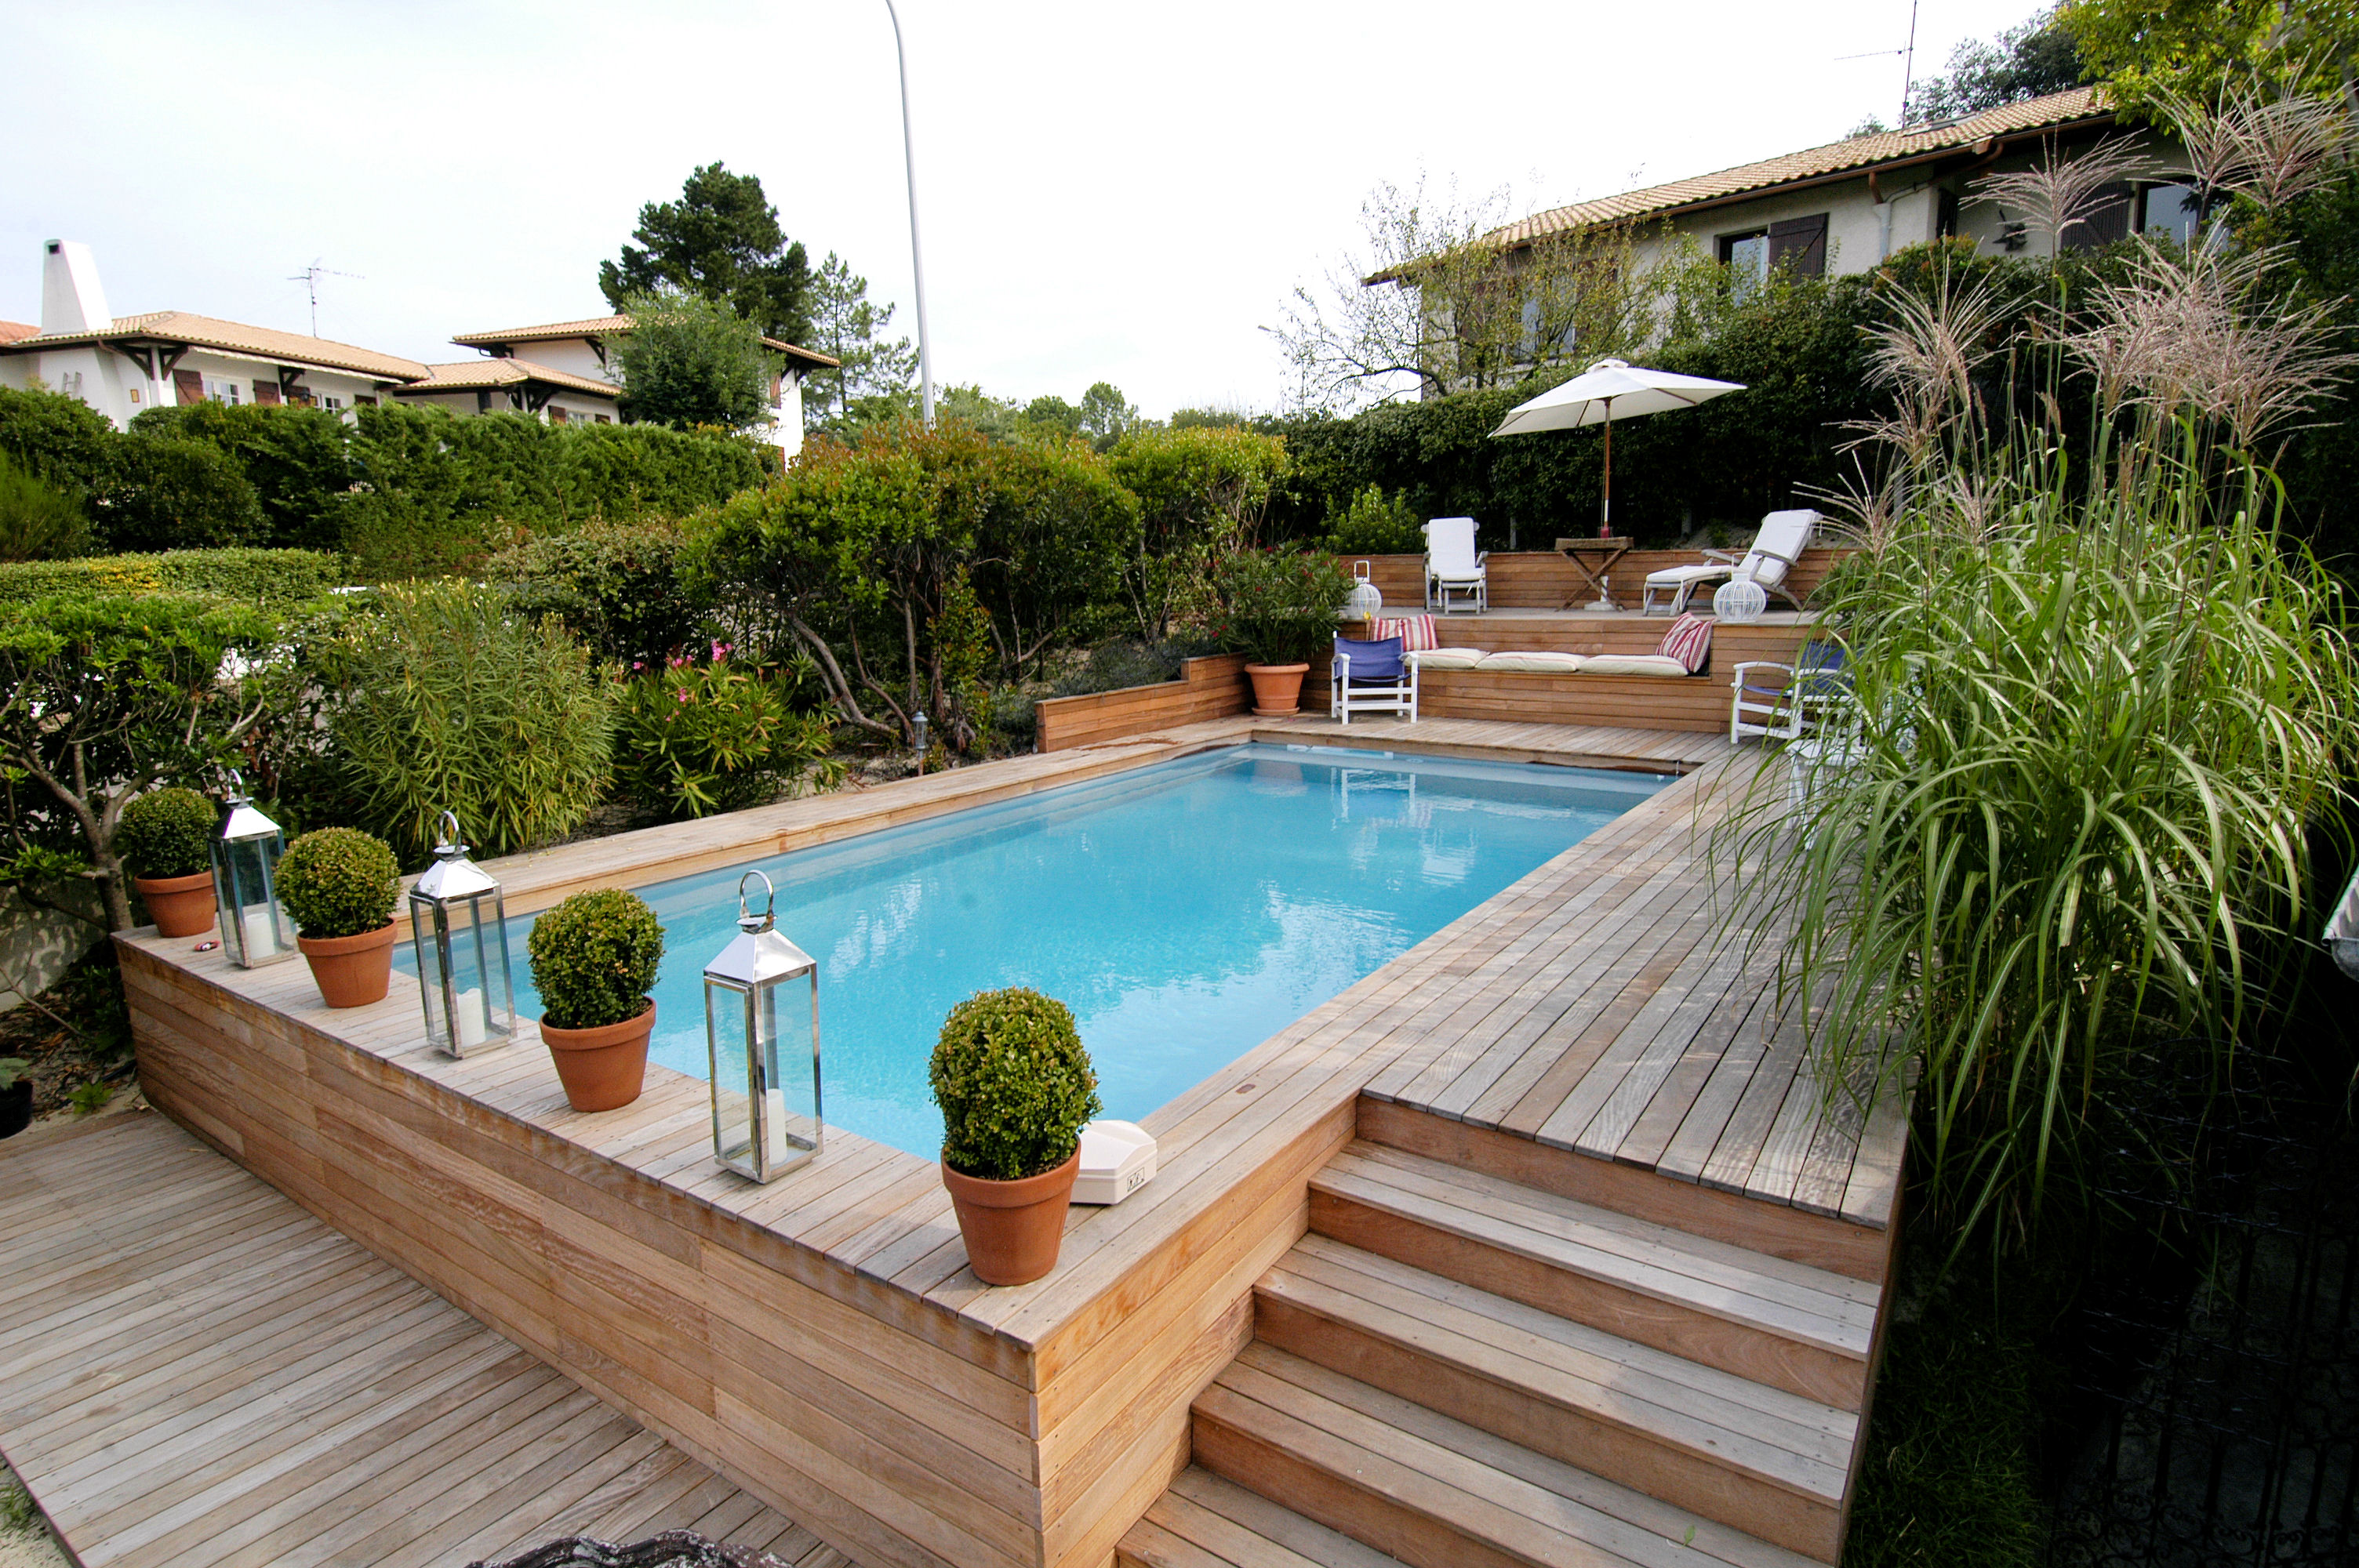 Piscine semi enterree bois for Piscine tubulaire bois